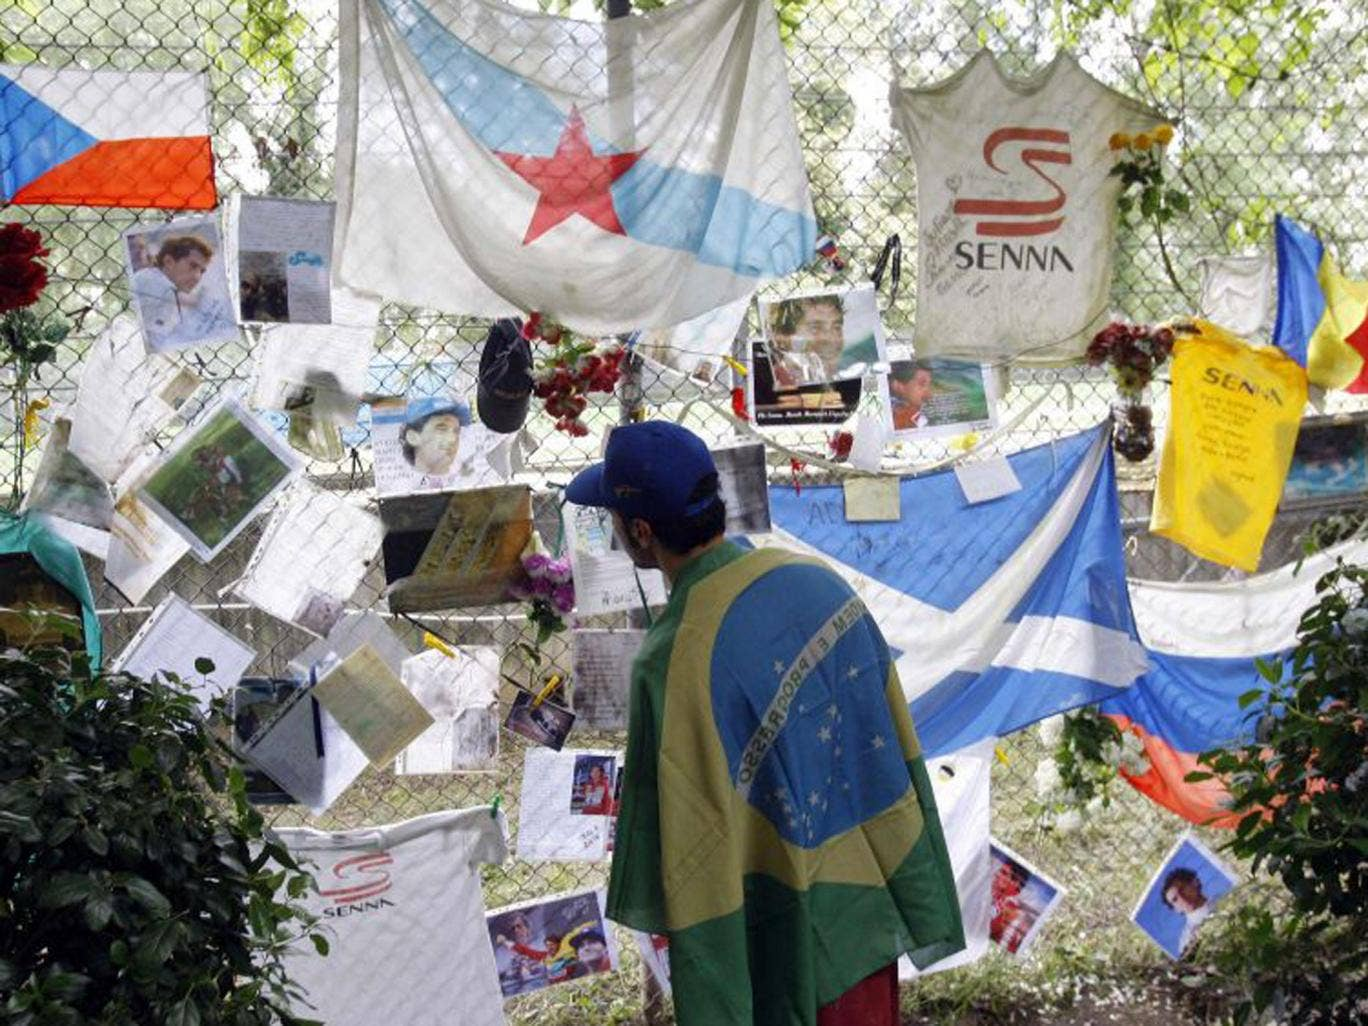 A fan of Brazilian Formula One driver Ayrton Senna reads handwritten notes and messages left at a statue memorial at the Imola race track today